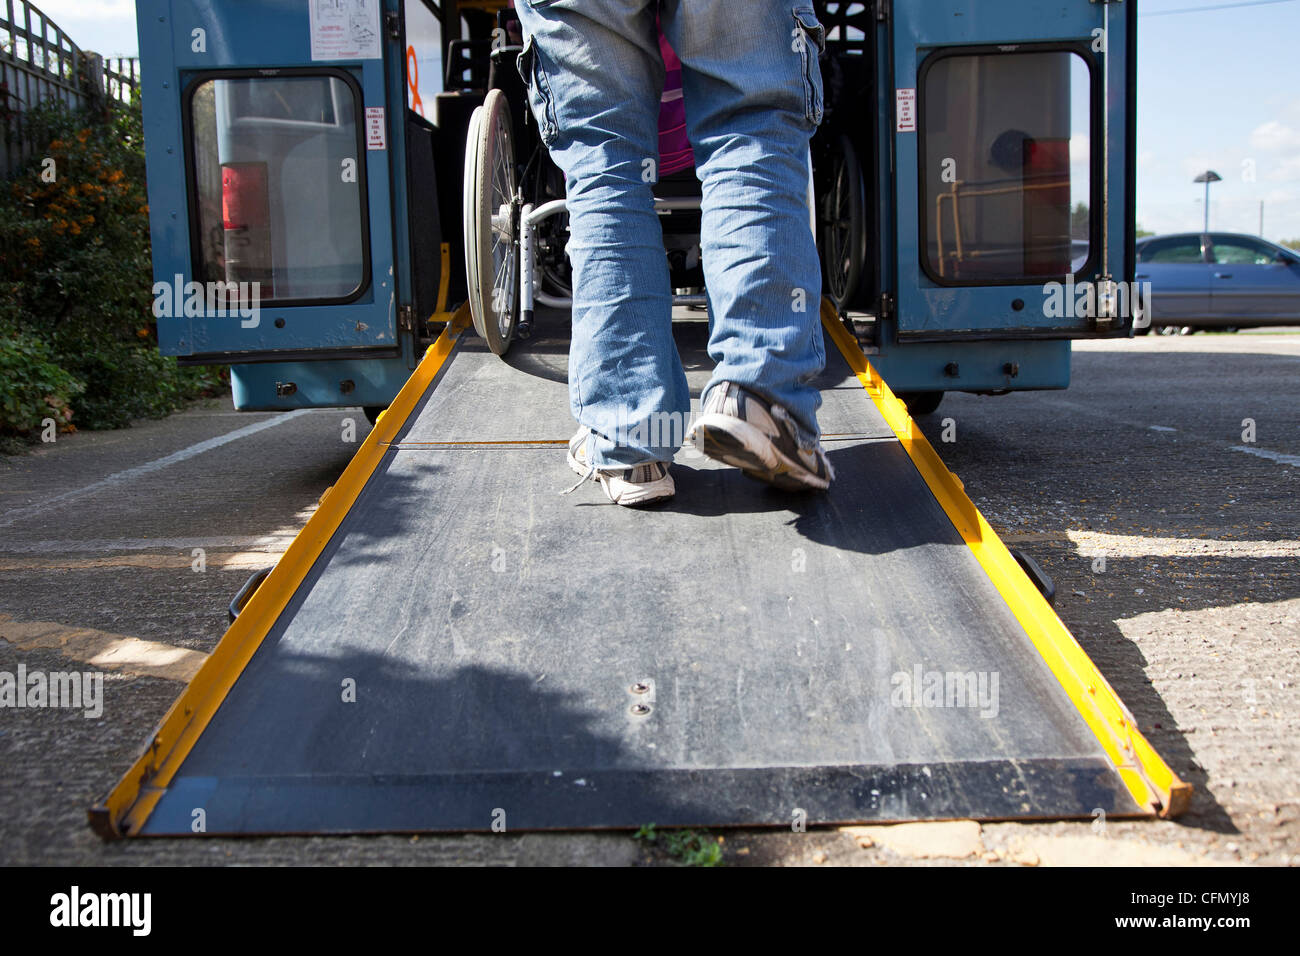 Wheelchair being pushed up ramp on to bus - Stock Image